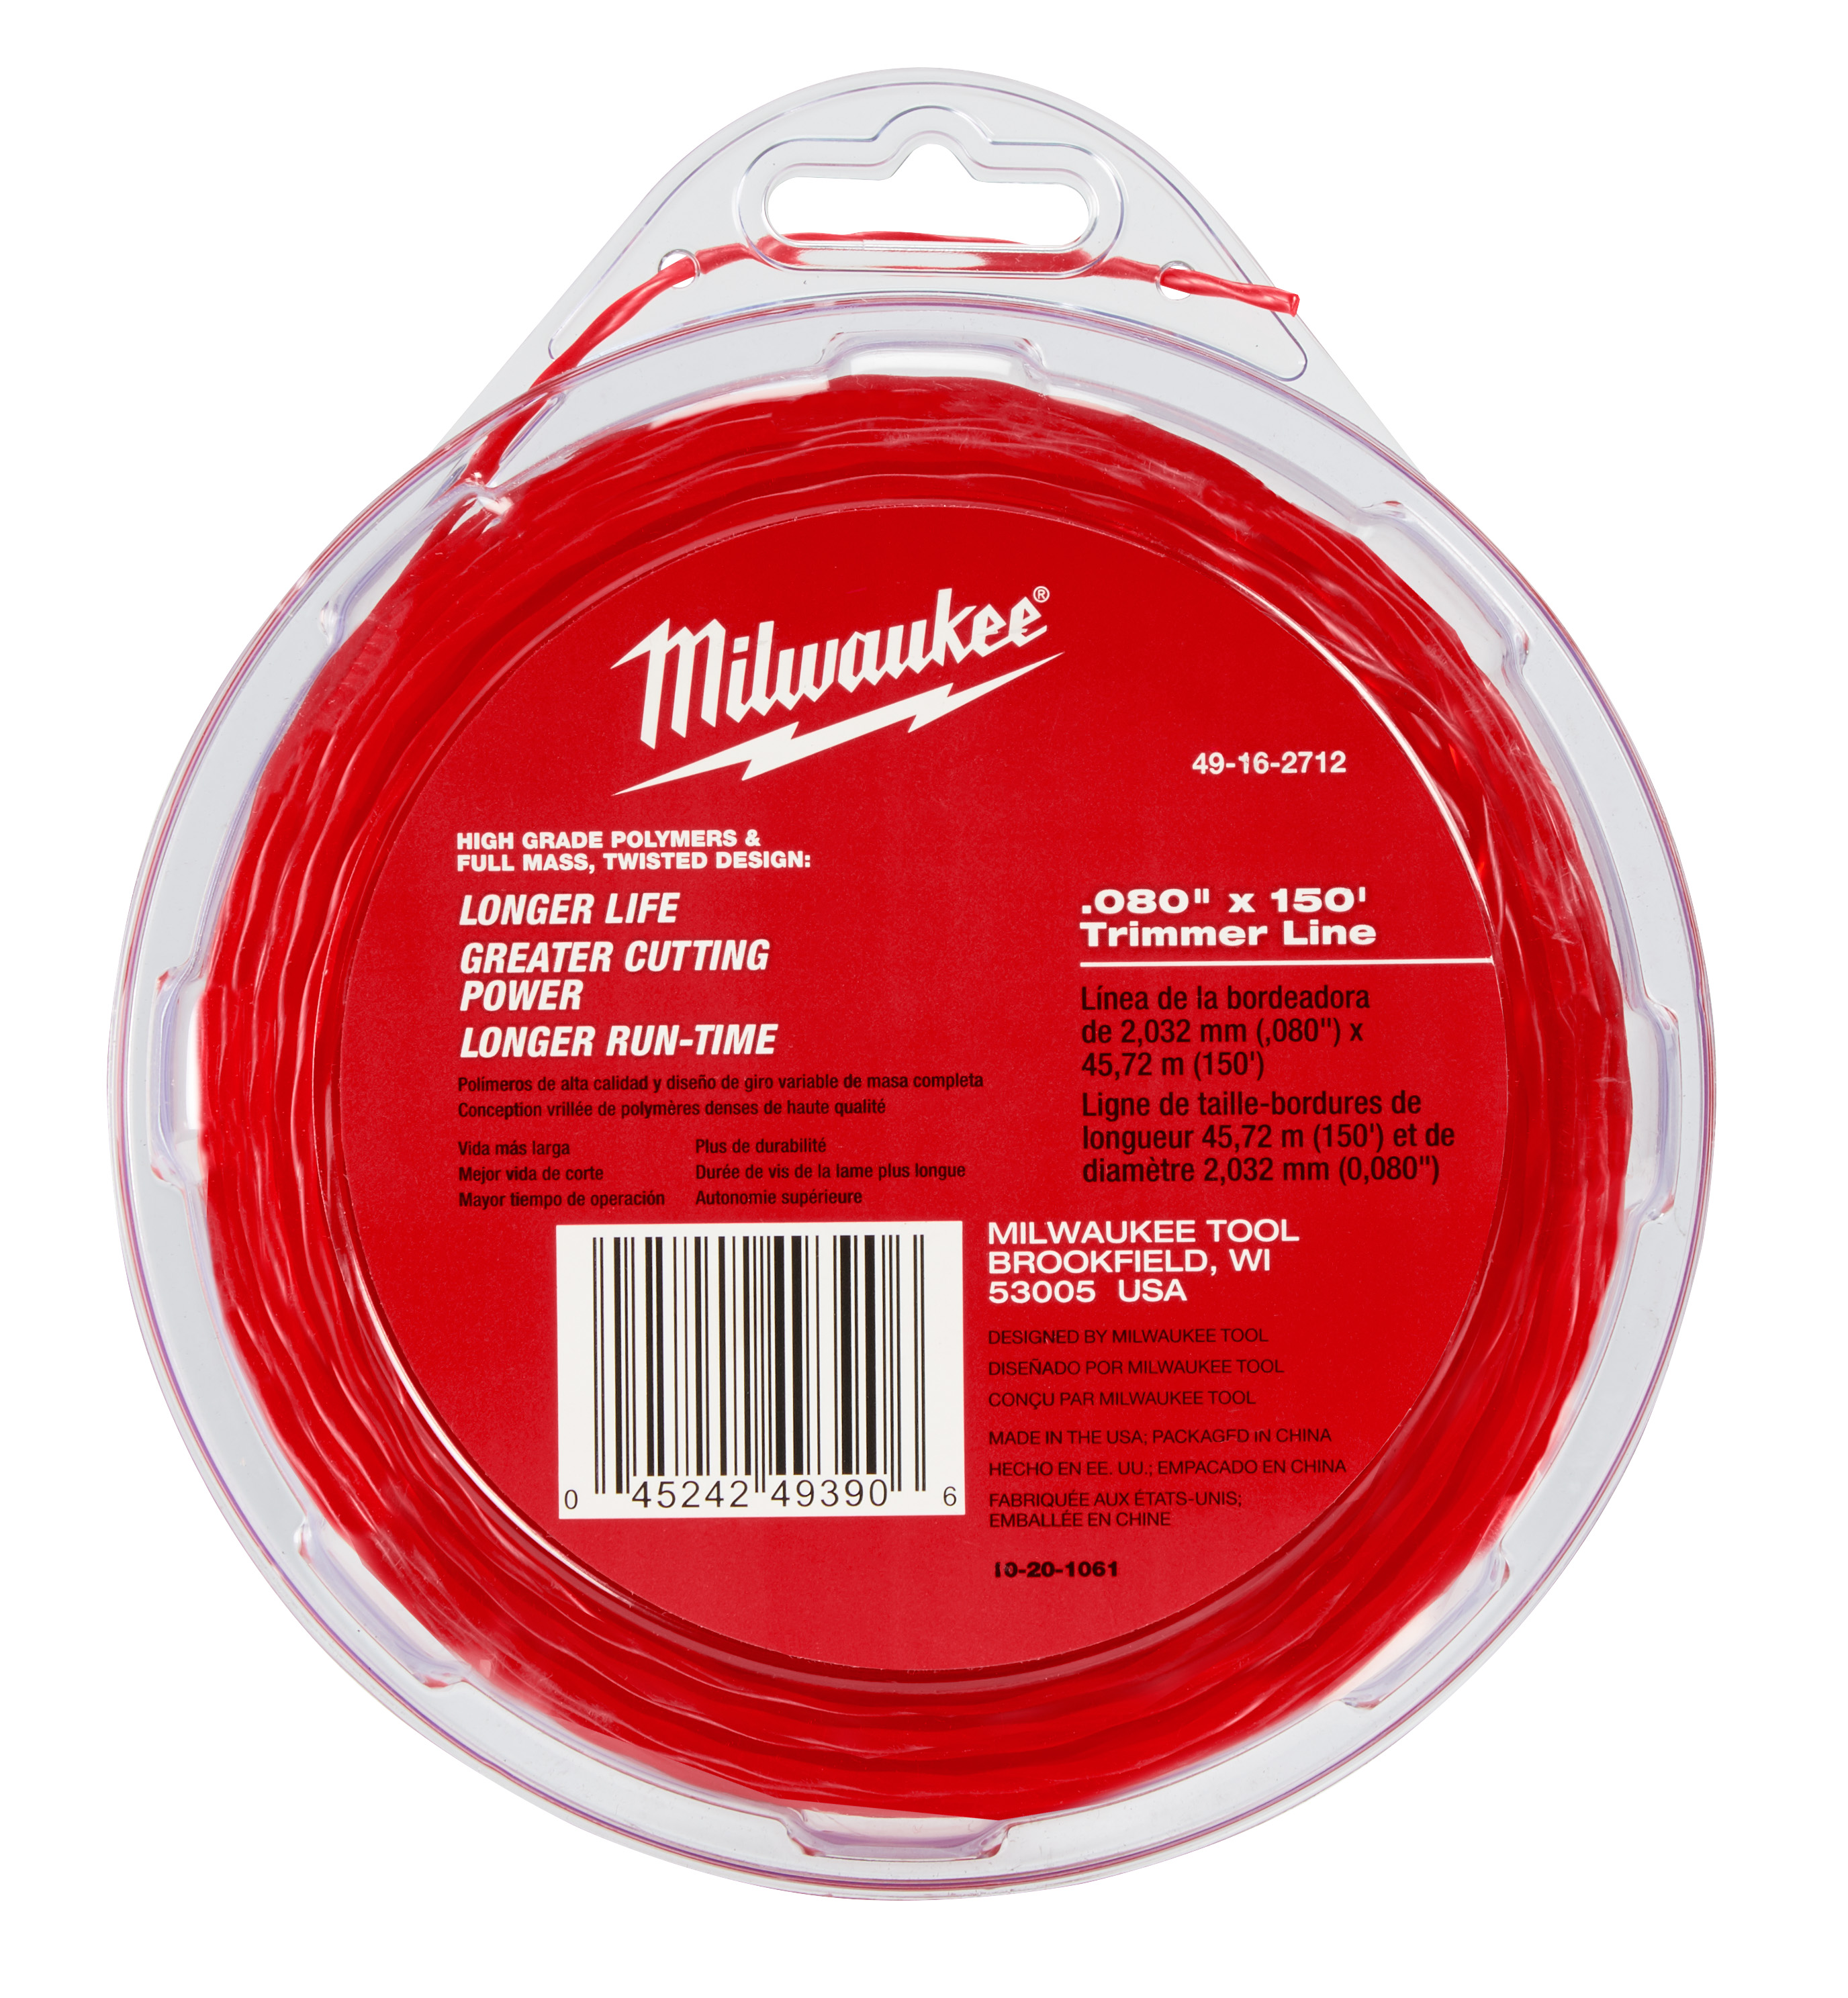 Milwaukee® 49-16-2712 Trimmer Line, For Use With M18™ FUEL™ 2725-20 String Trimmer